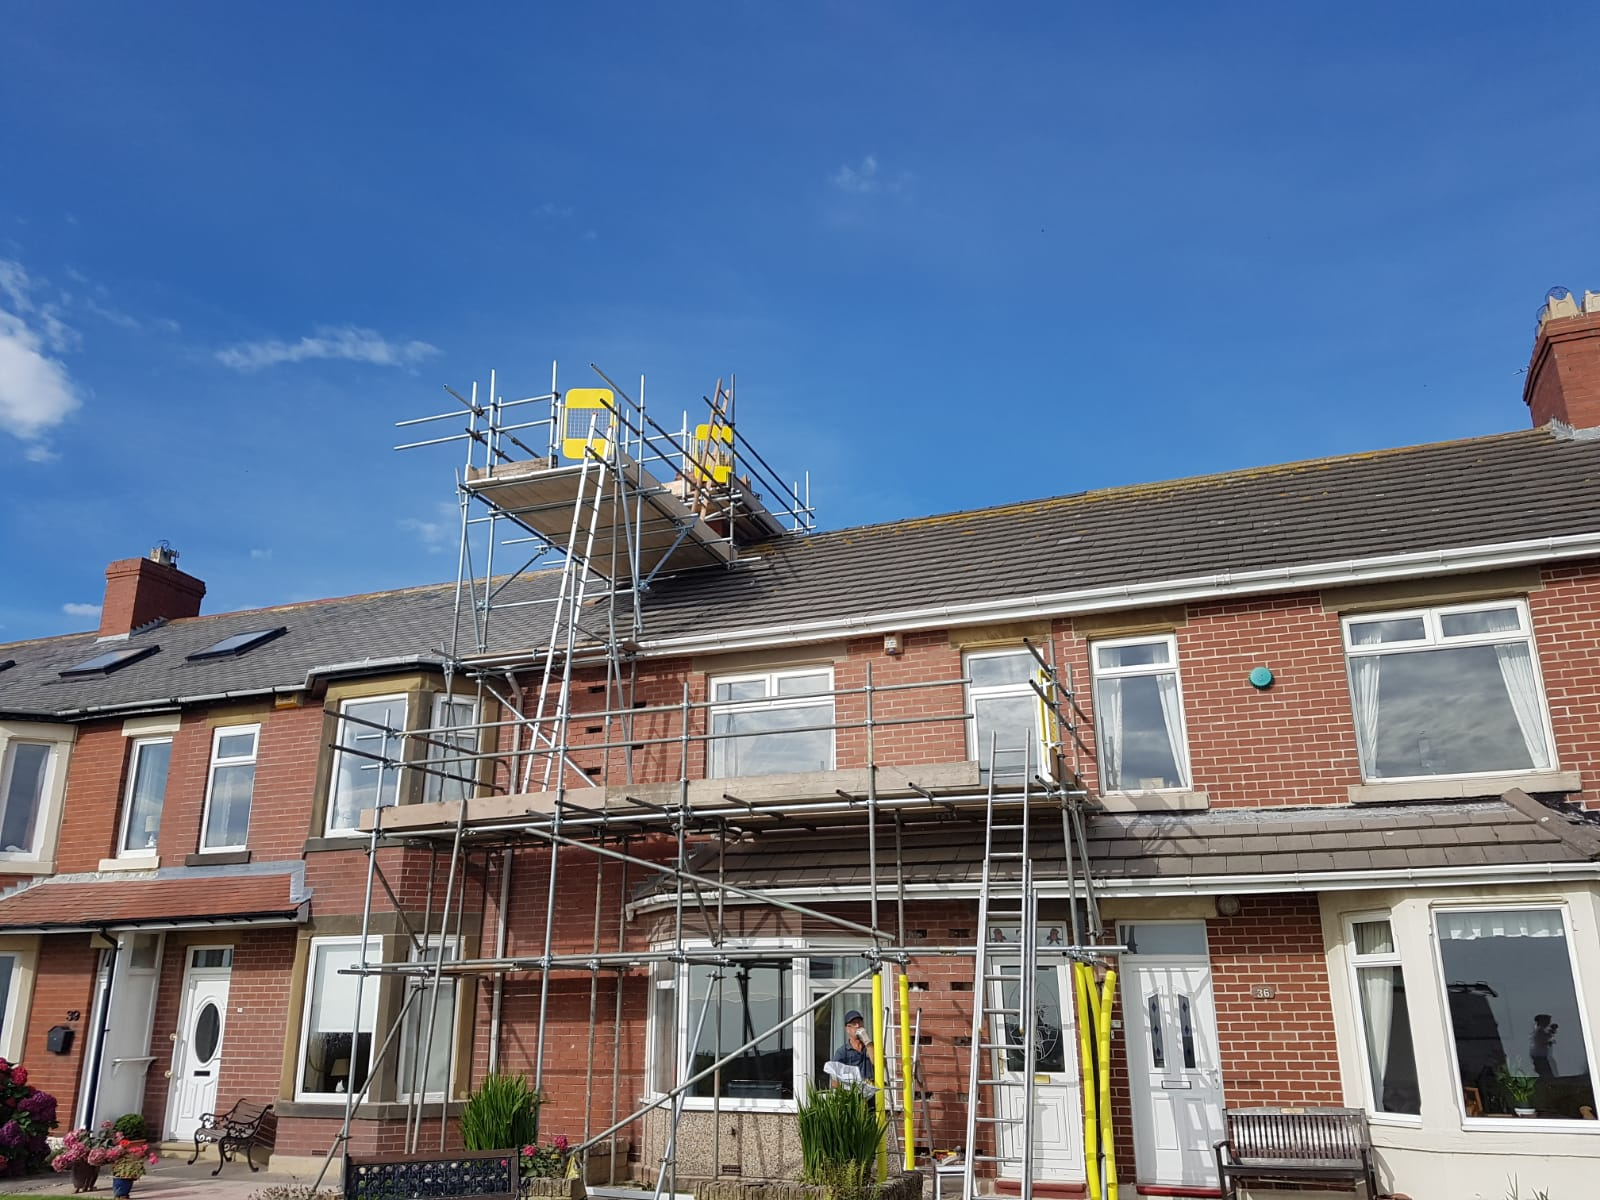 Independent scaffold with a chimney stack.